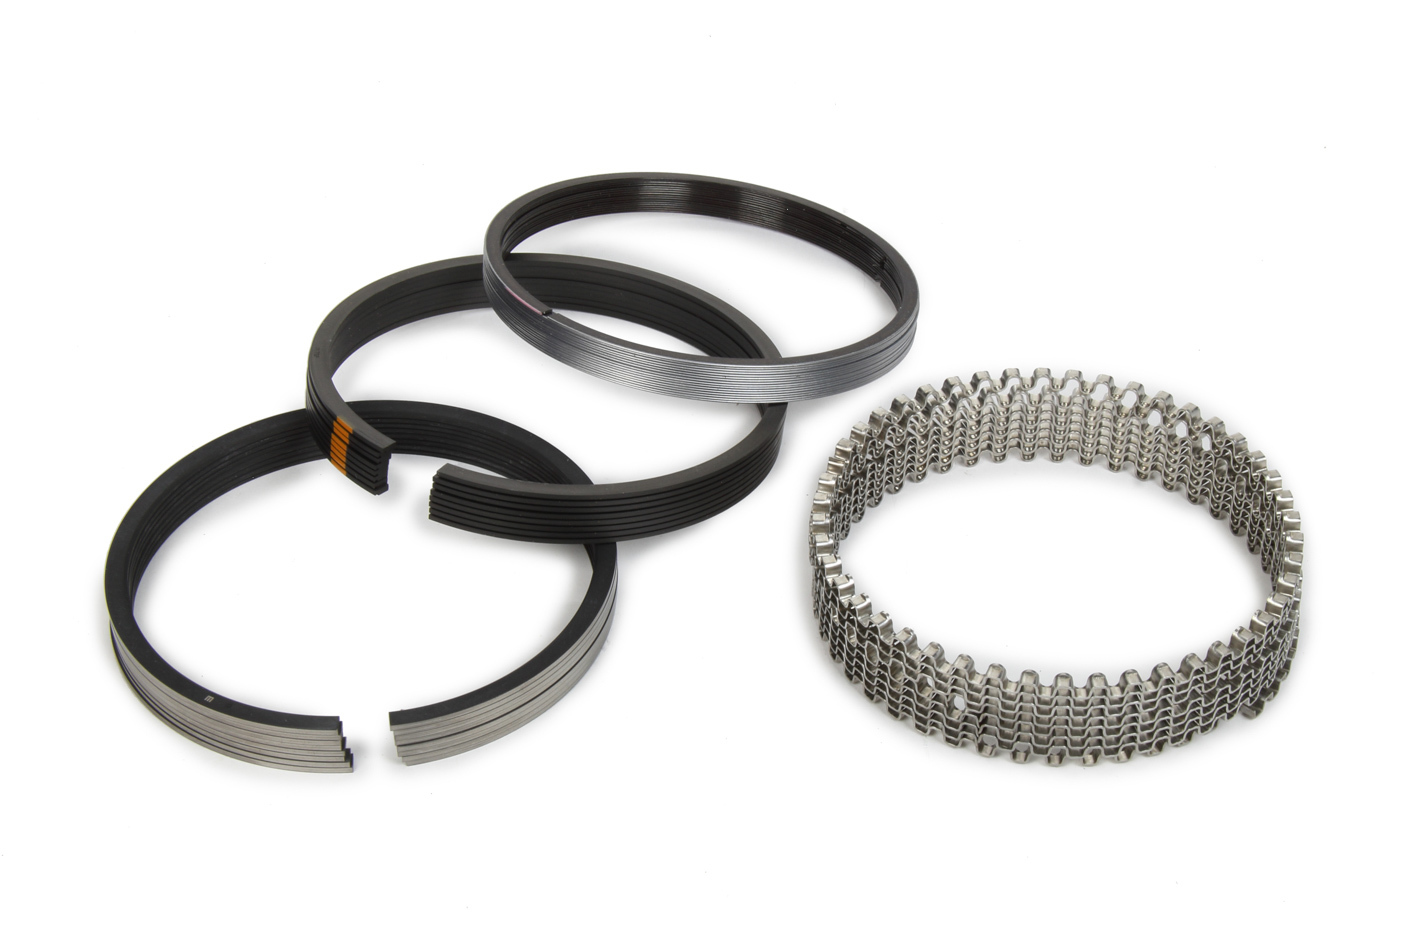 Michigan 77 315-0032.045 Piston Rings, 4.165 in Bore, File Fit, 1/16 x 1/16 x 3/16 in Thick, Standard Tension, Plasma Moly, 8 Cylinder, Kit